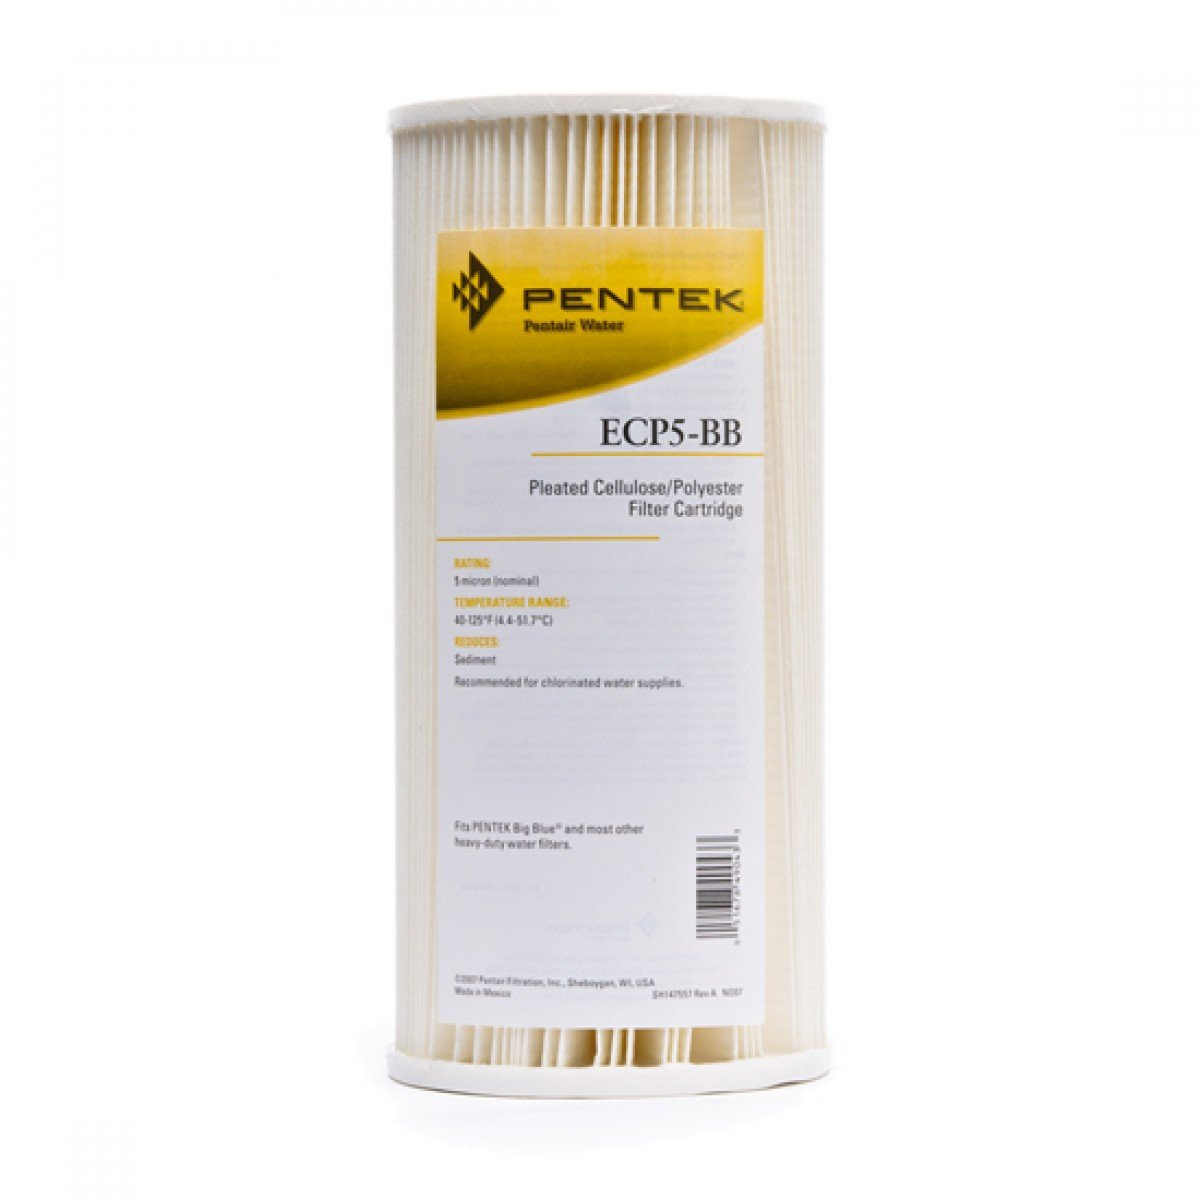 Pentek ECP5-BB Whole House Water Filter Replacement Cartridge, 1 Filter